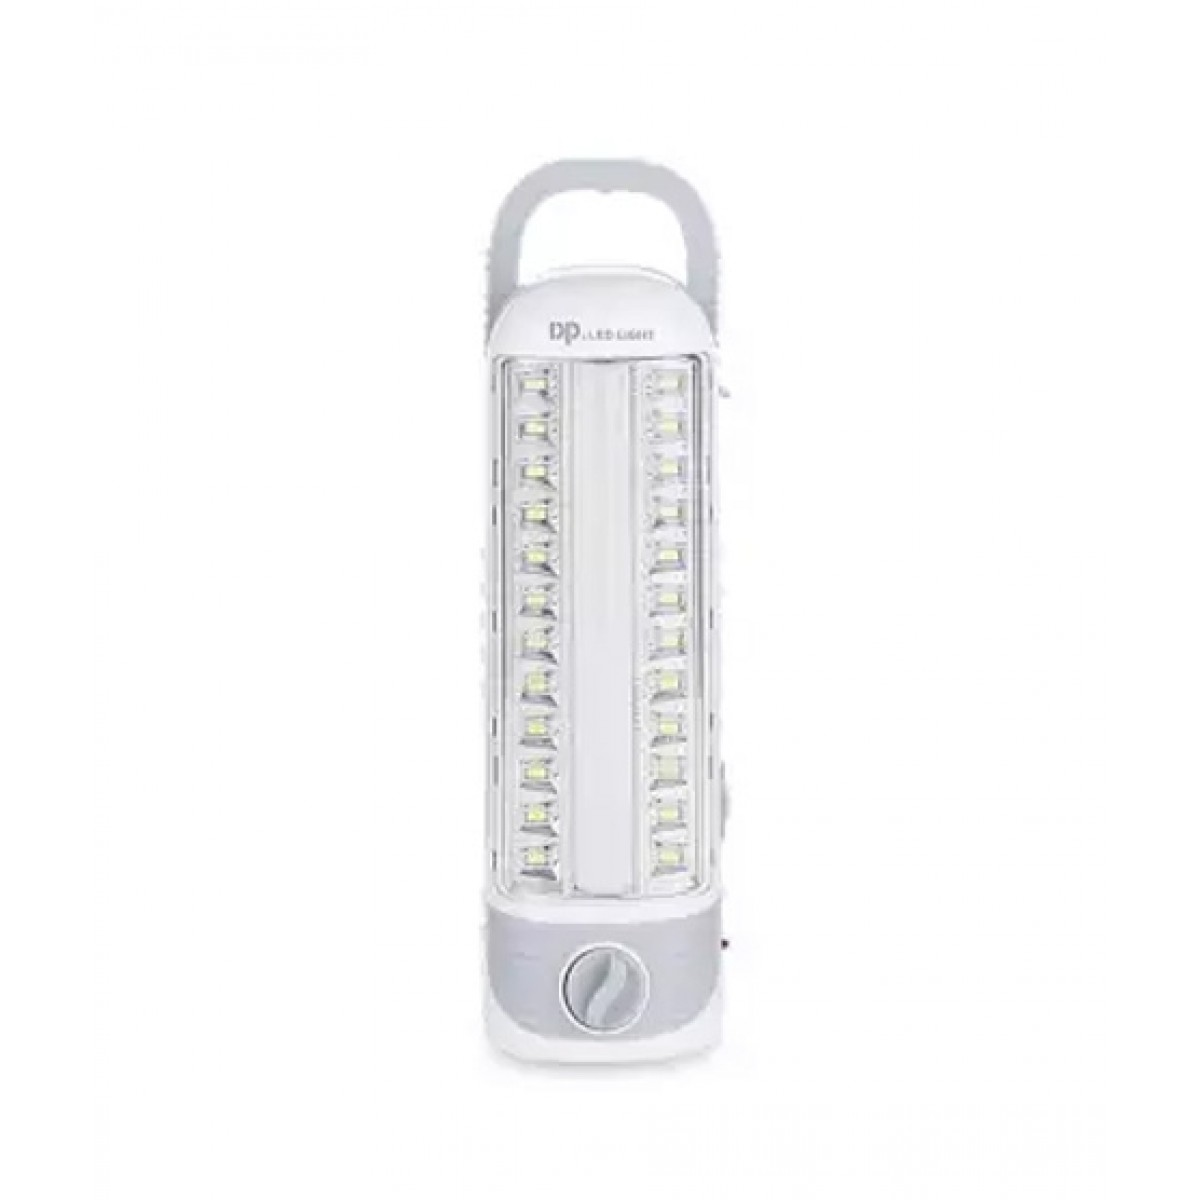 DP LED Emergency Light White (DP-7104)